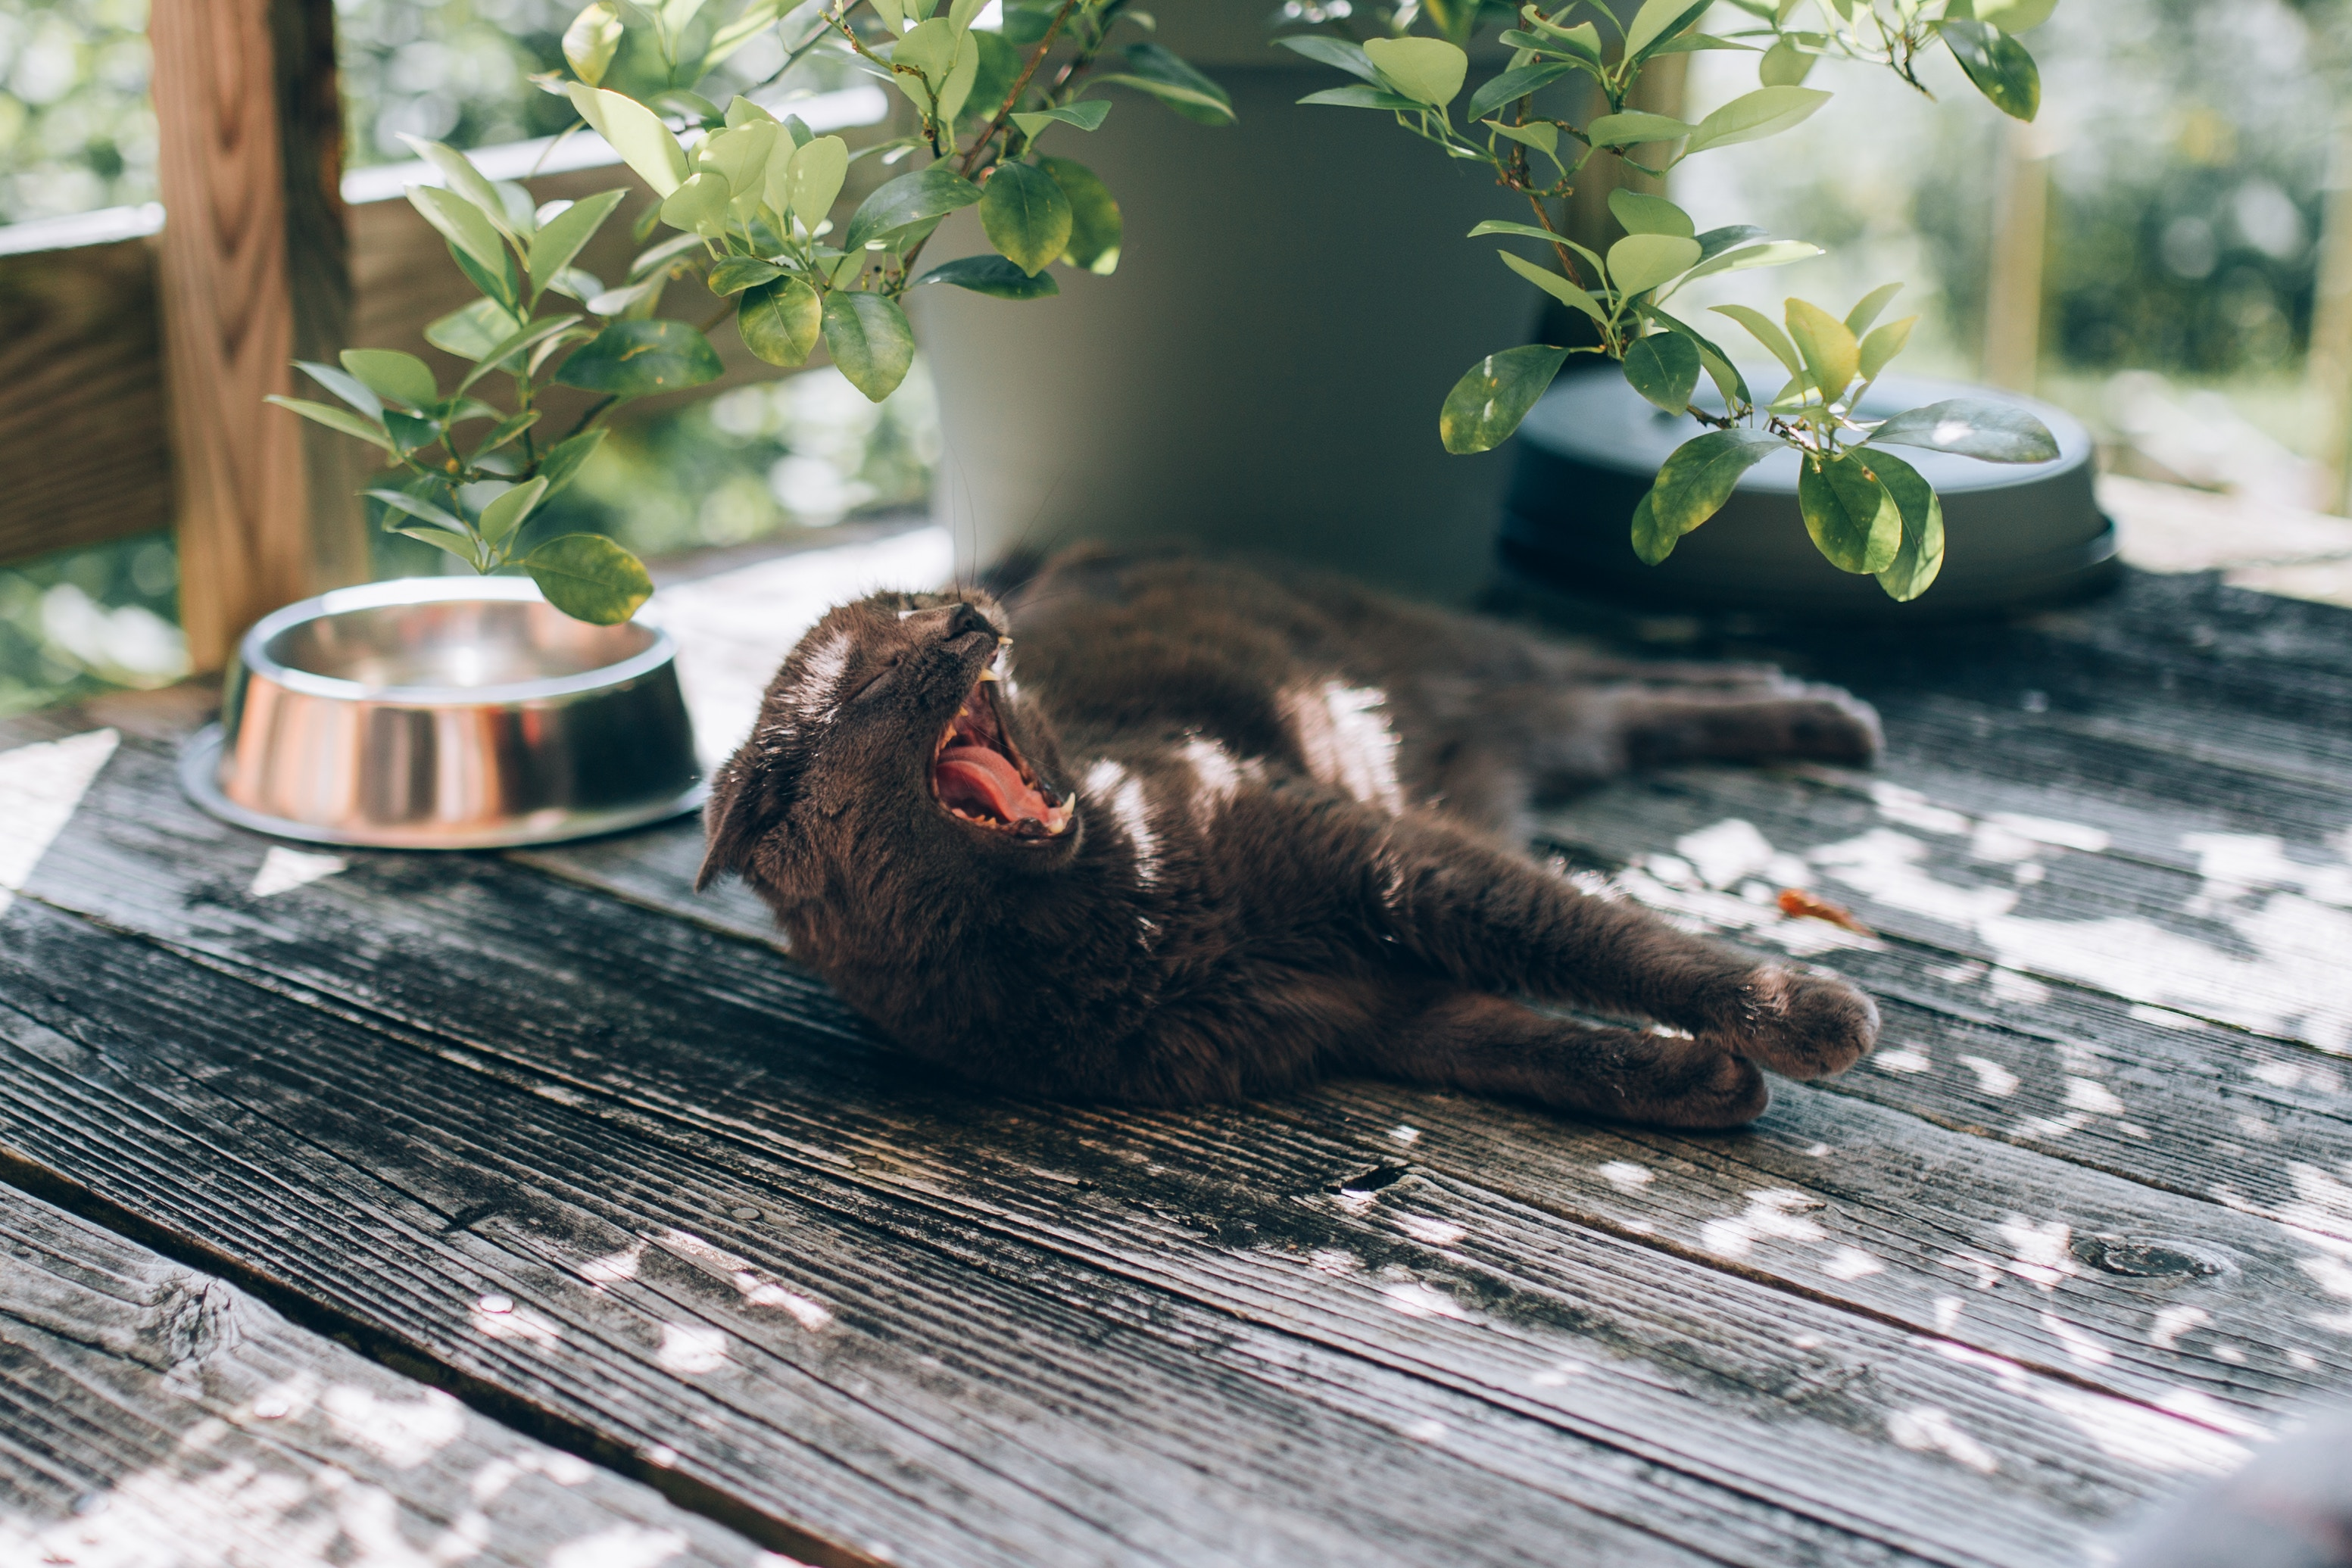 a brown cat yawning in while laying on a wooden deck